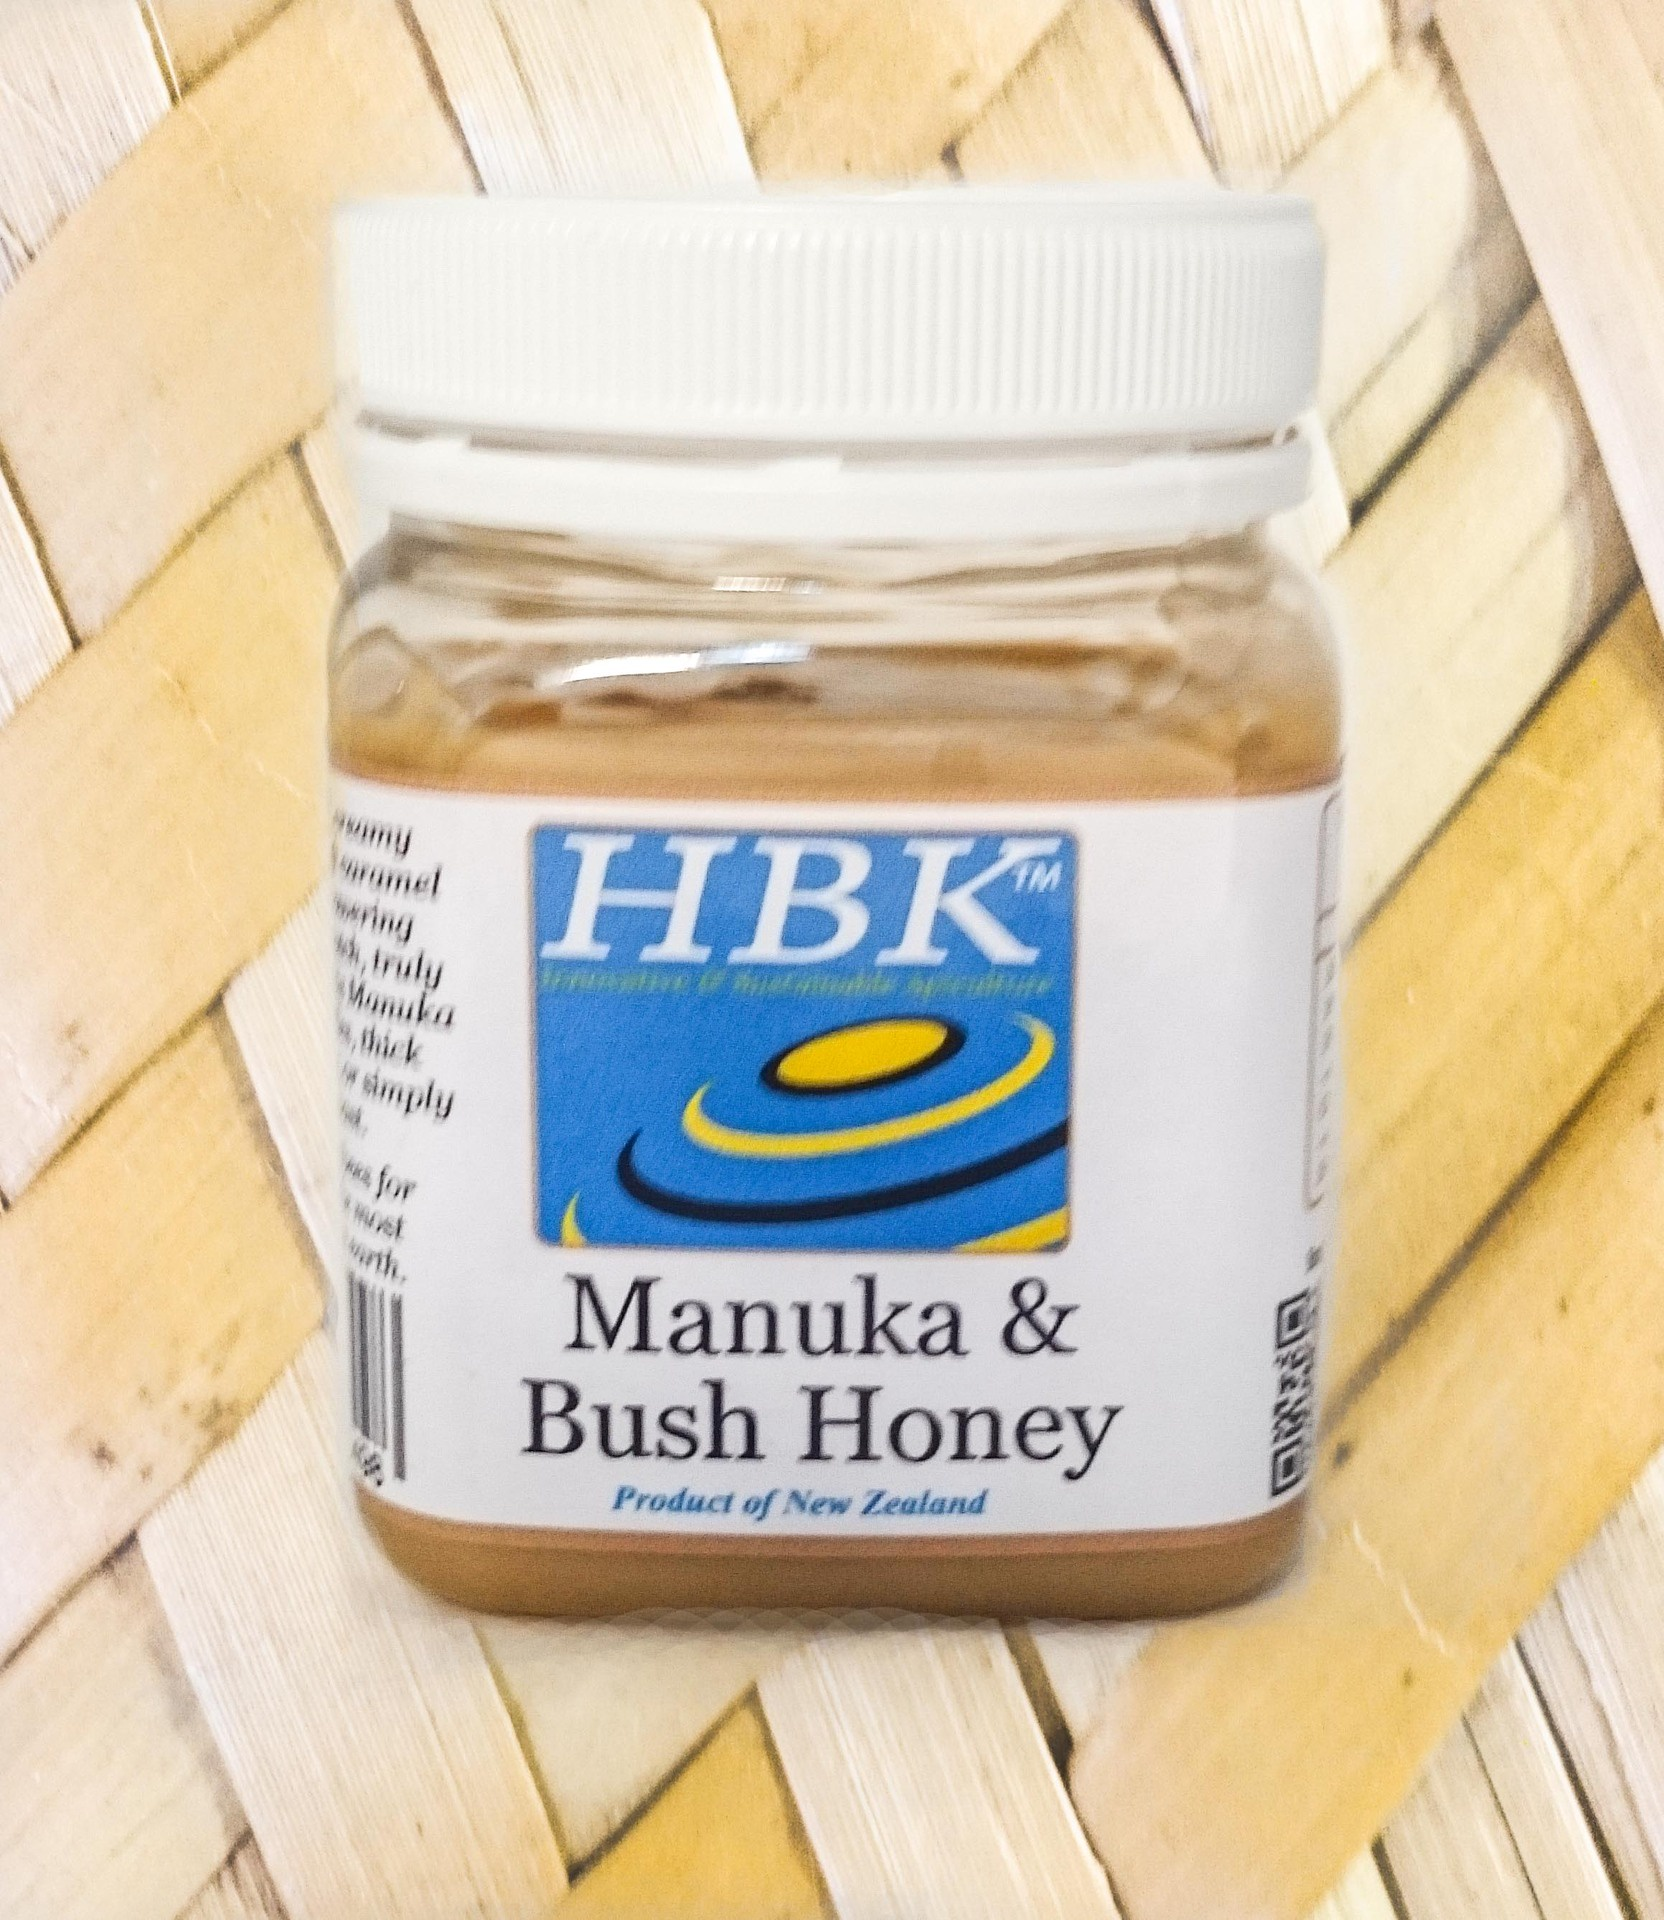 Manuka and Bush Honey